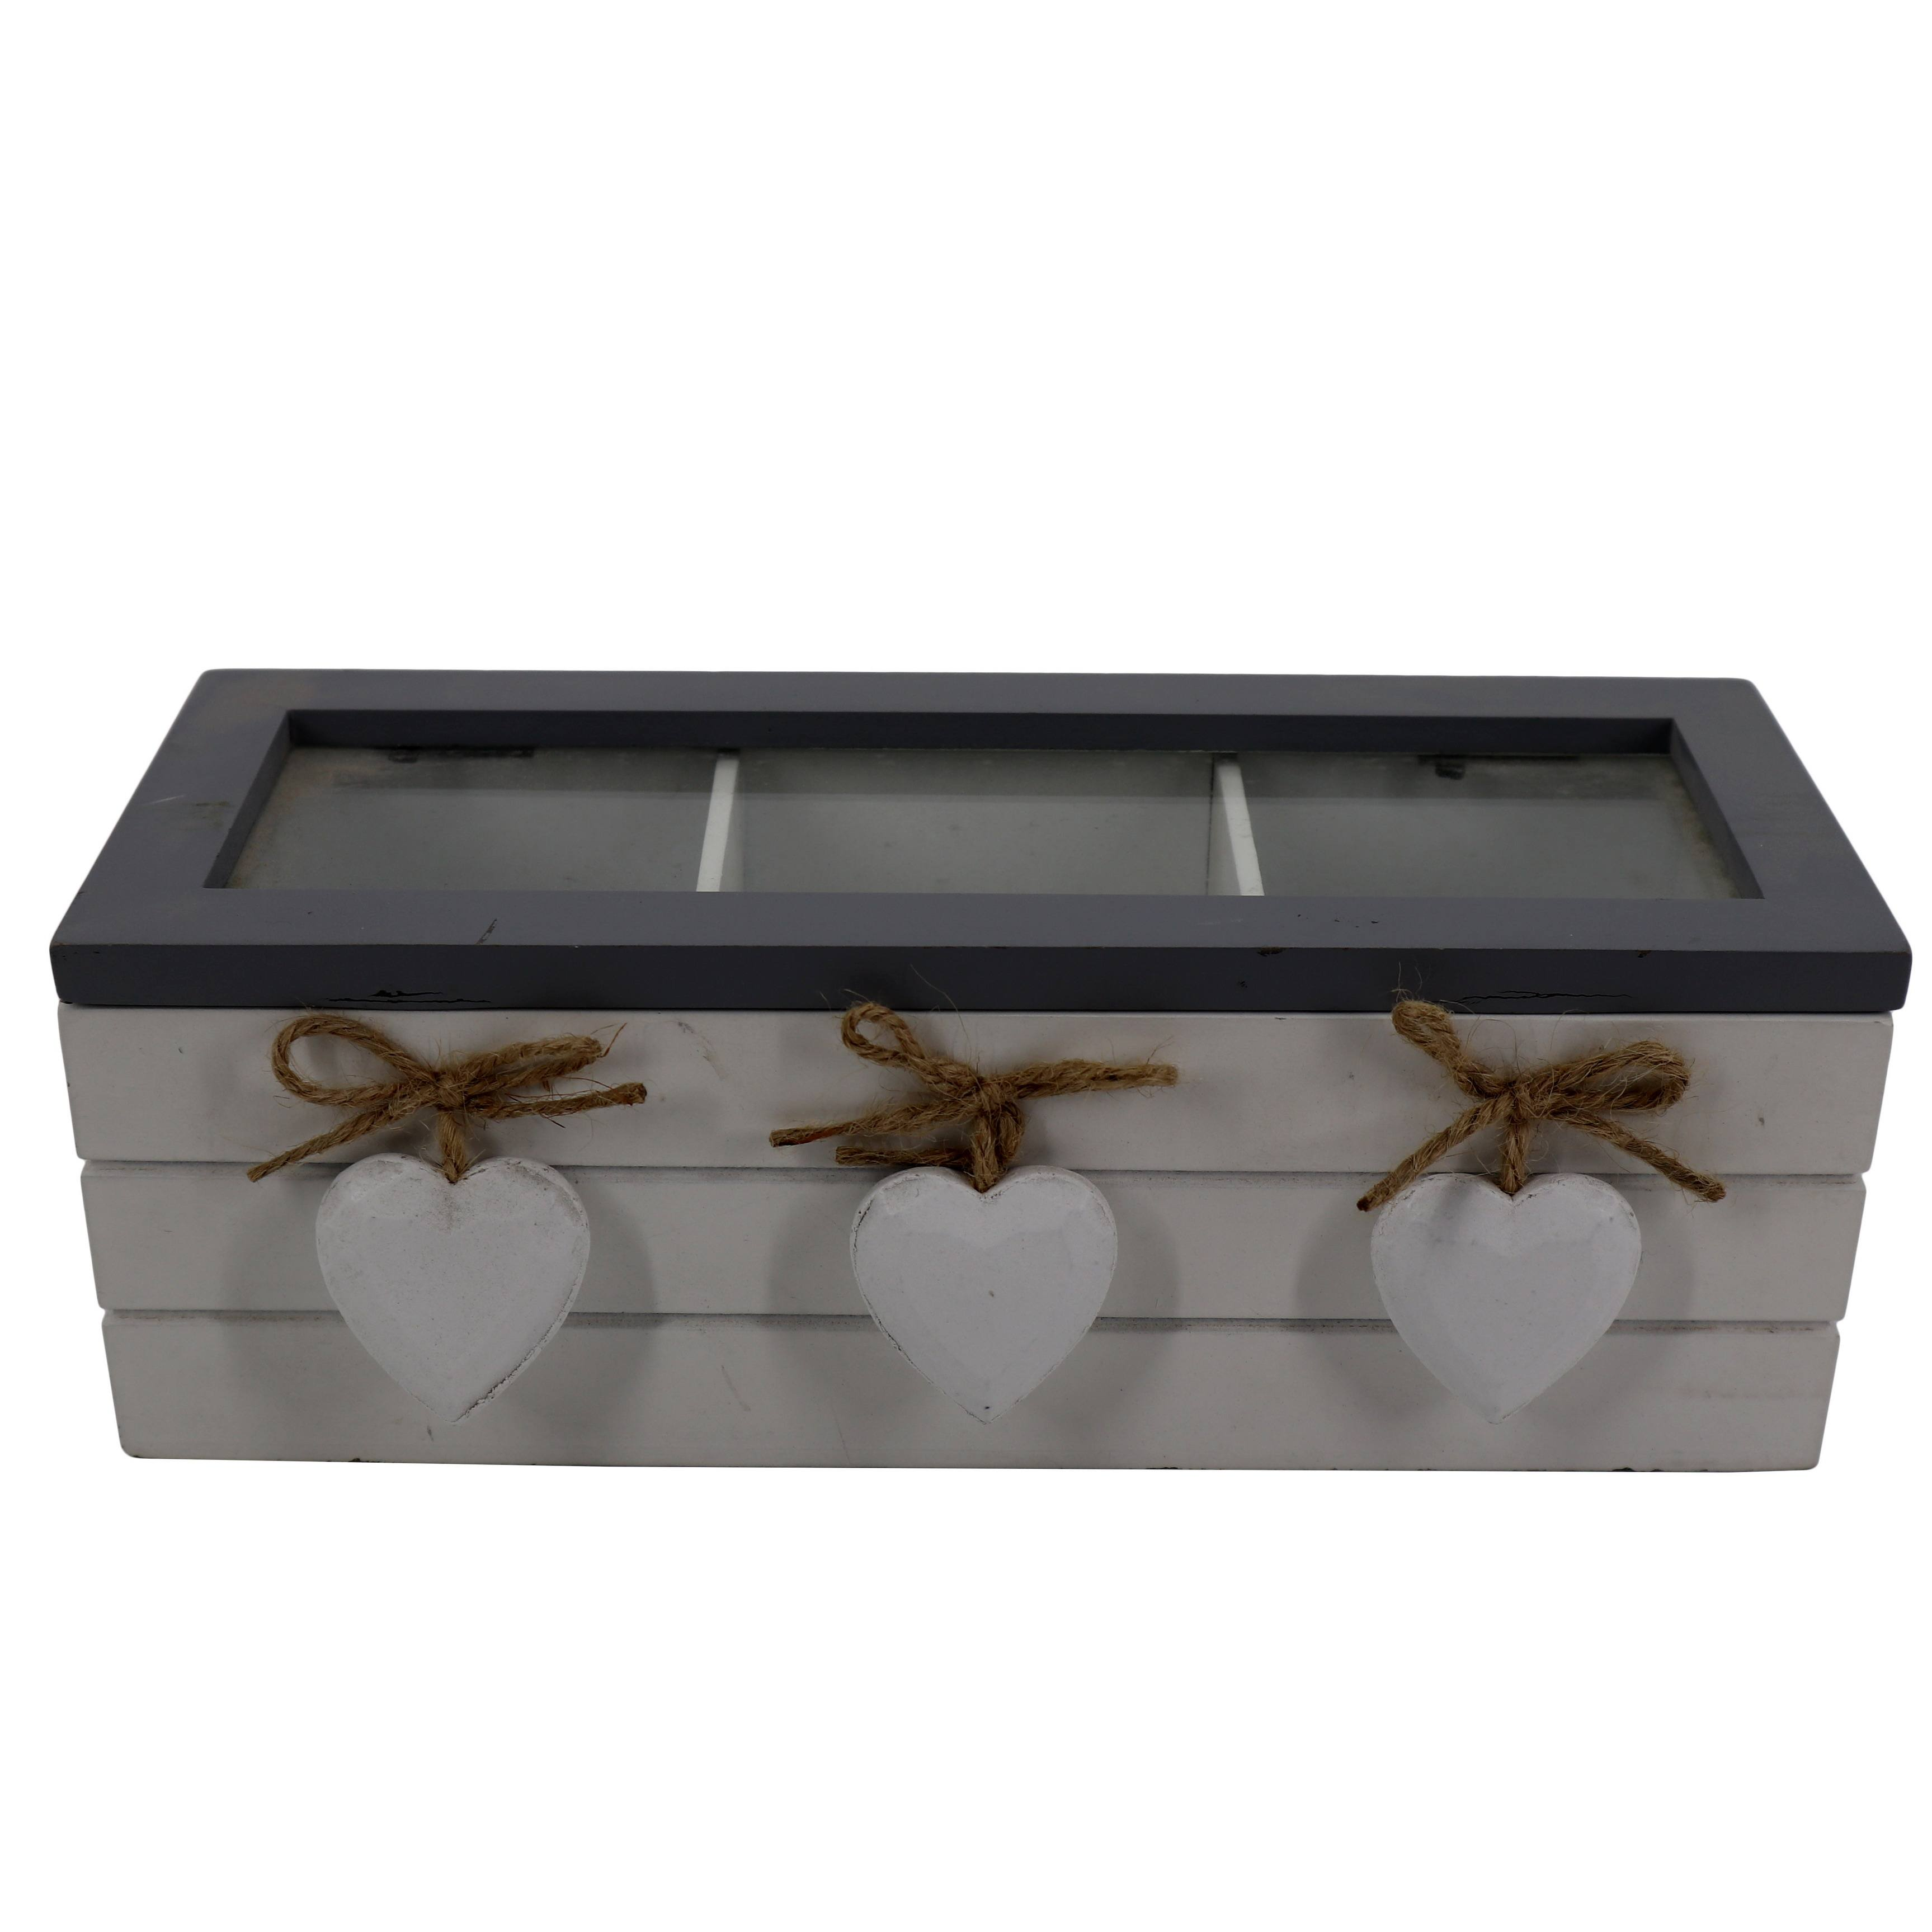 Fashionable three-pack wooden tea box with glass lidand three small hearts